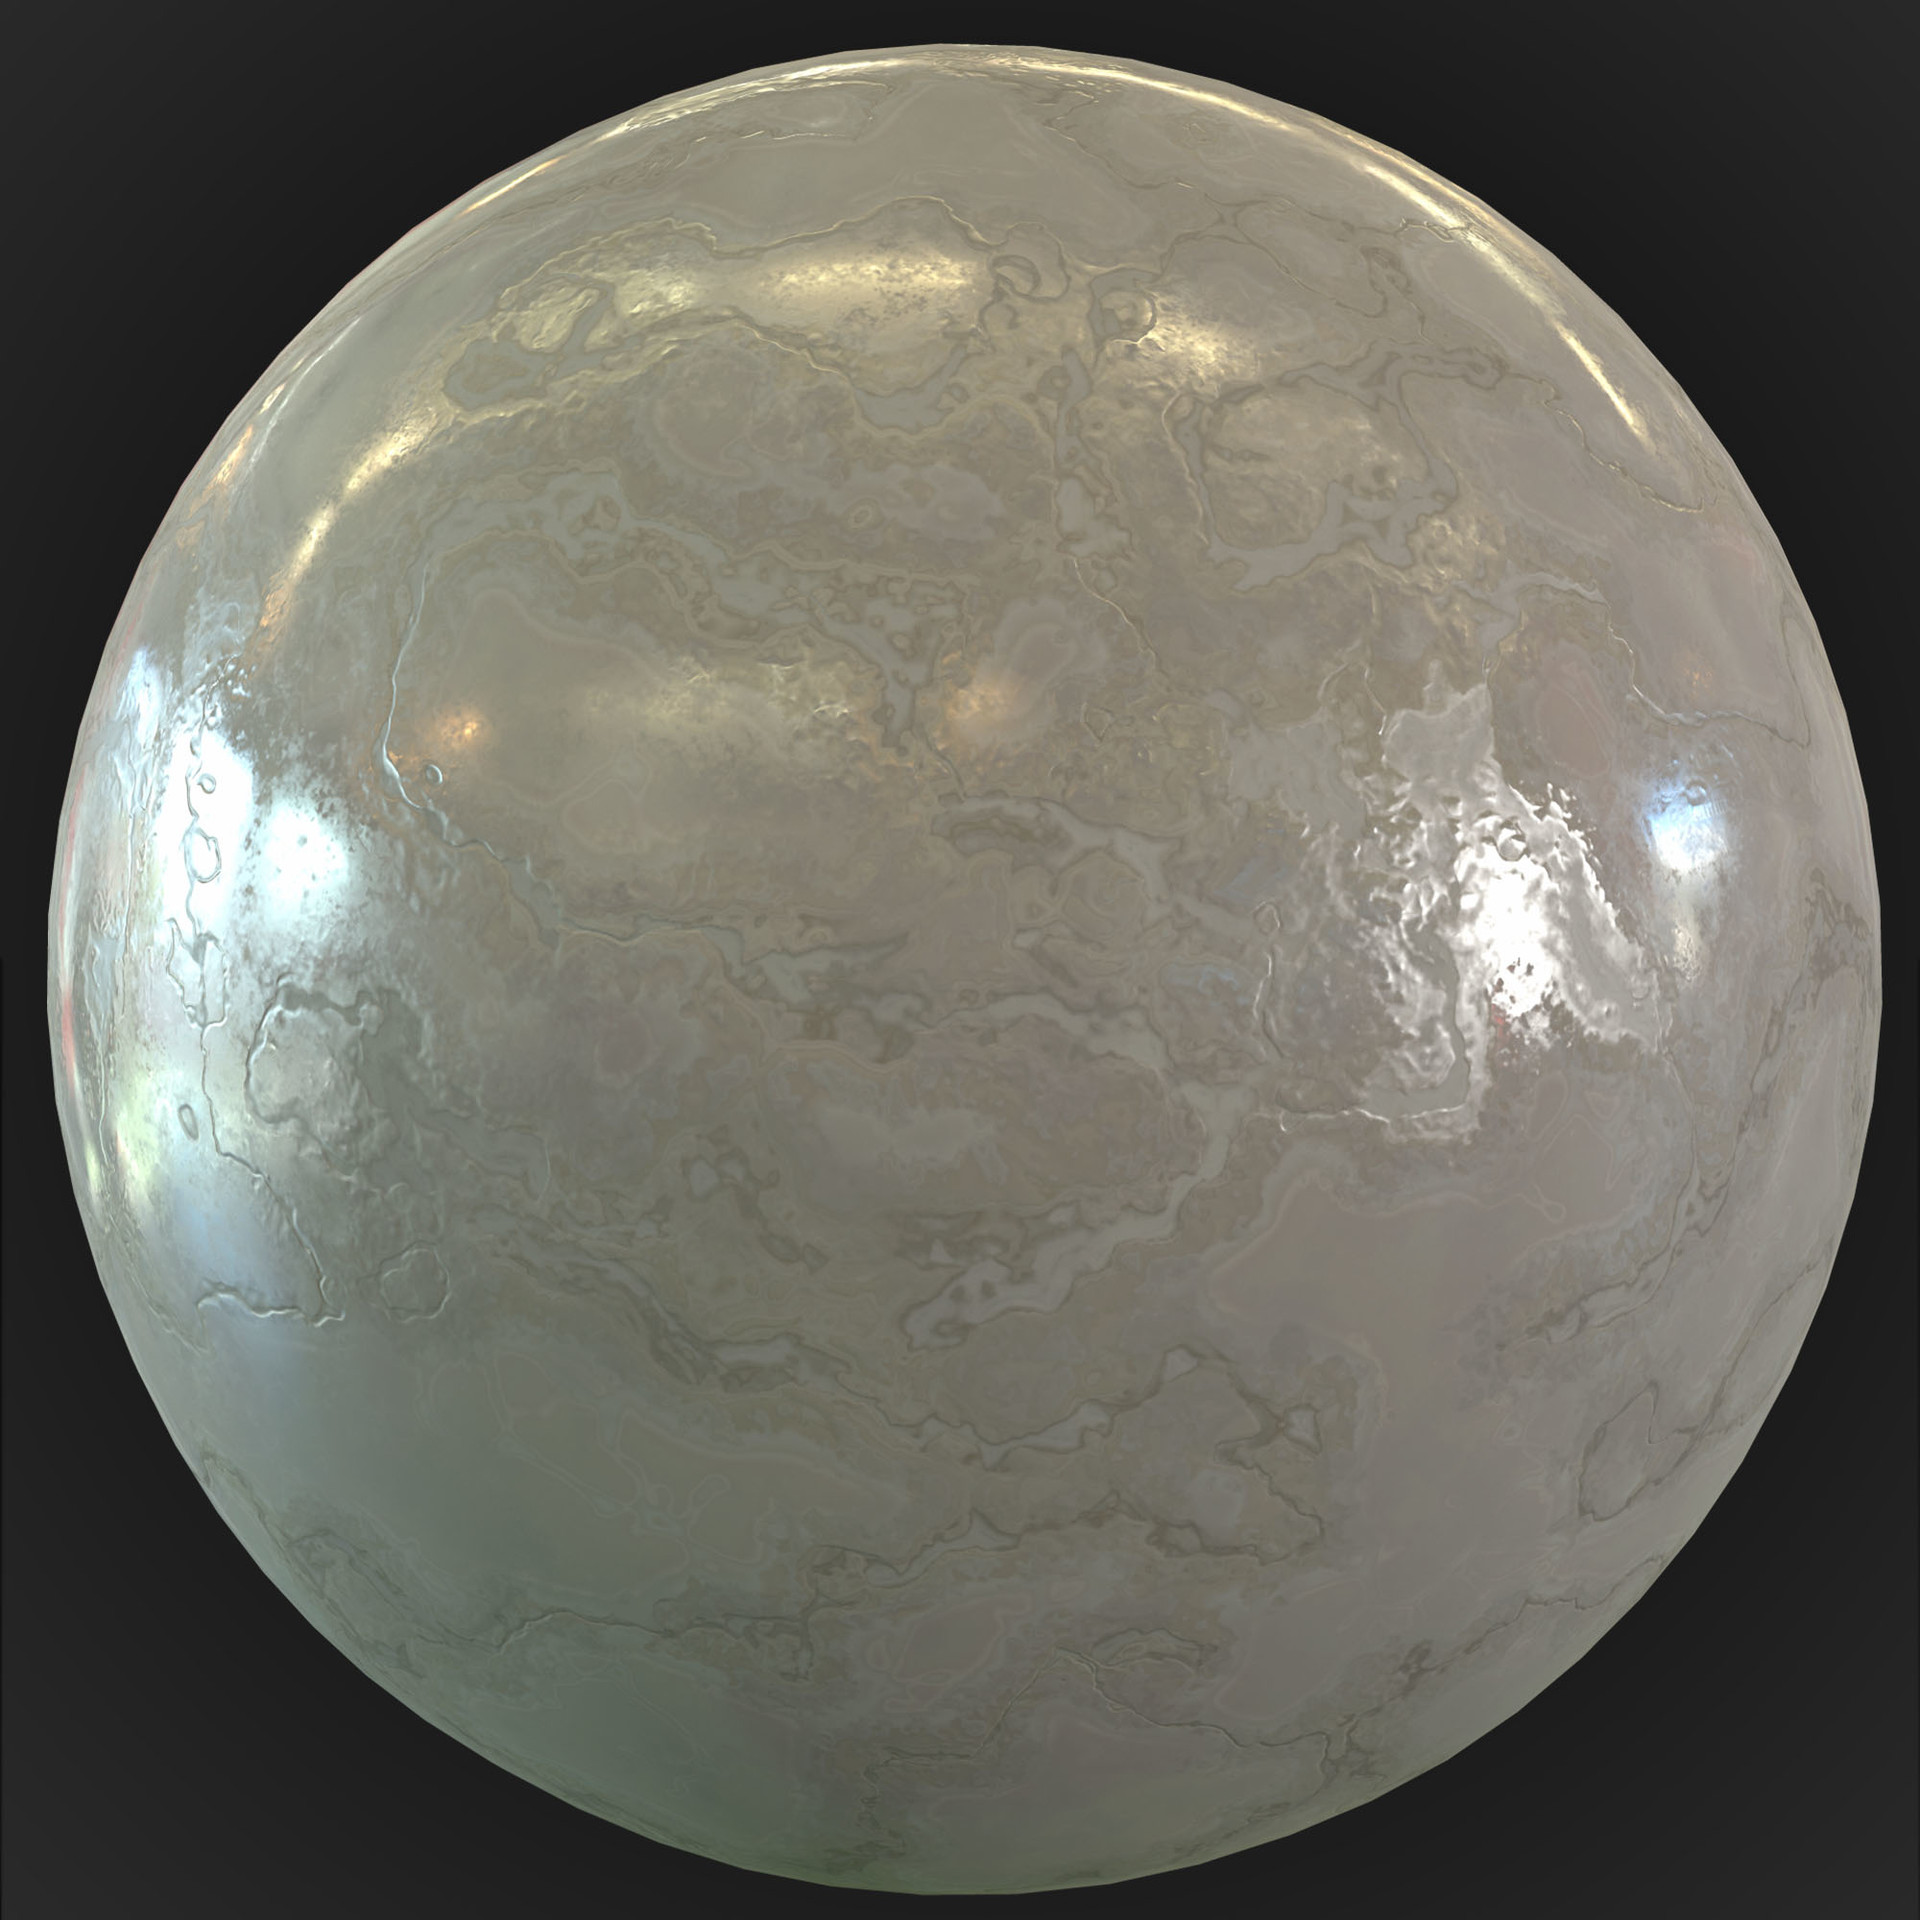 Matthew stankevicius material sphere fill